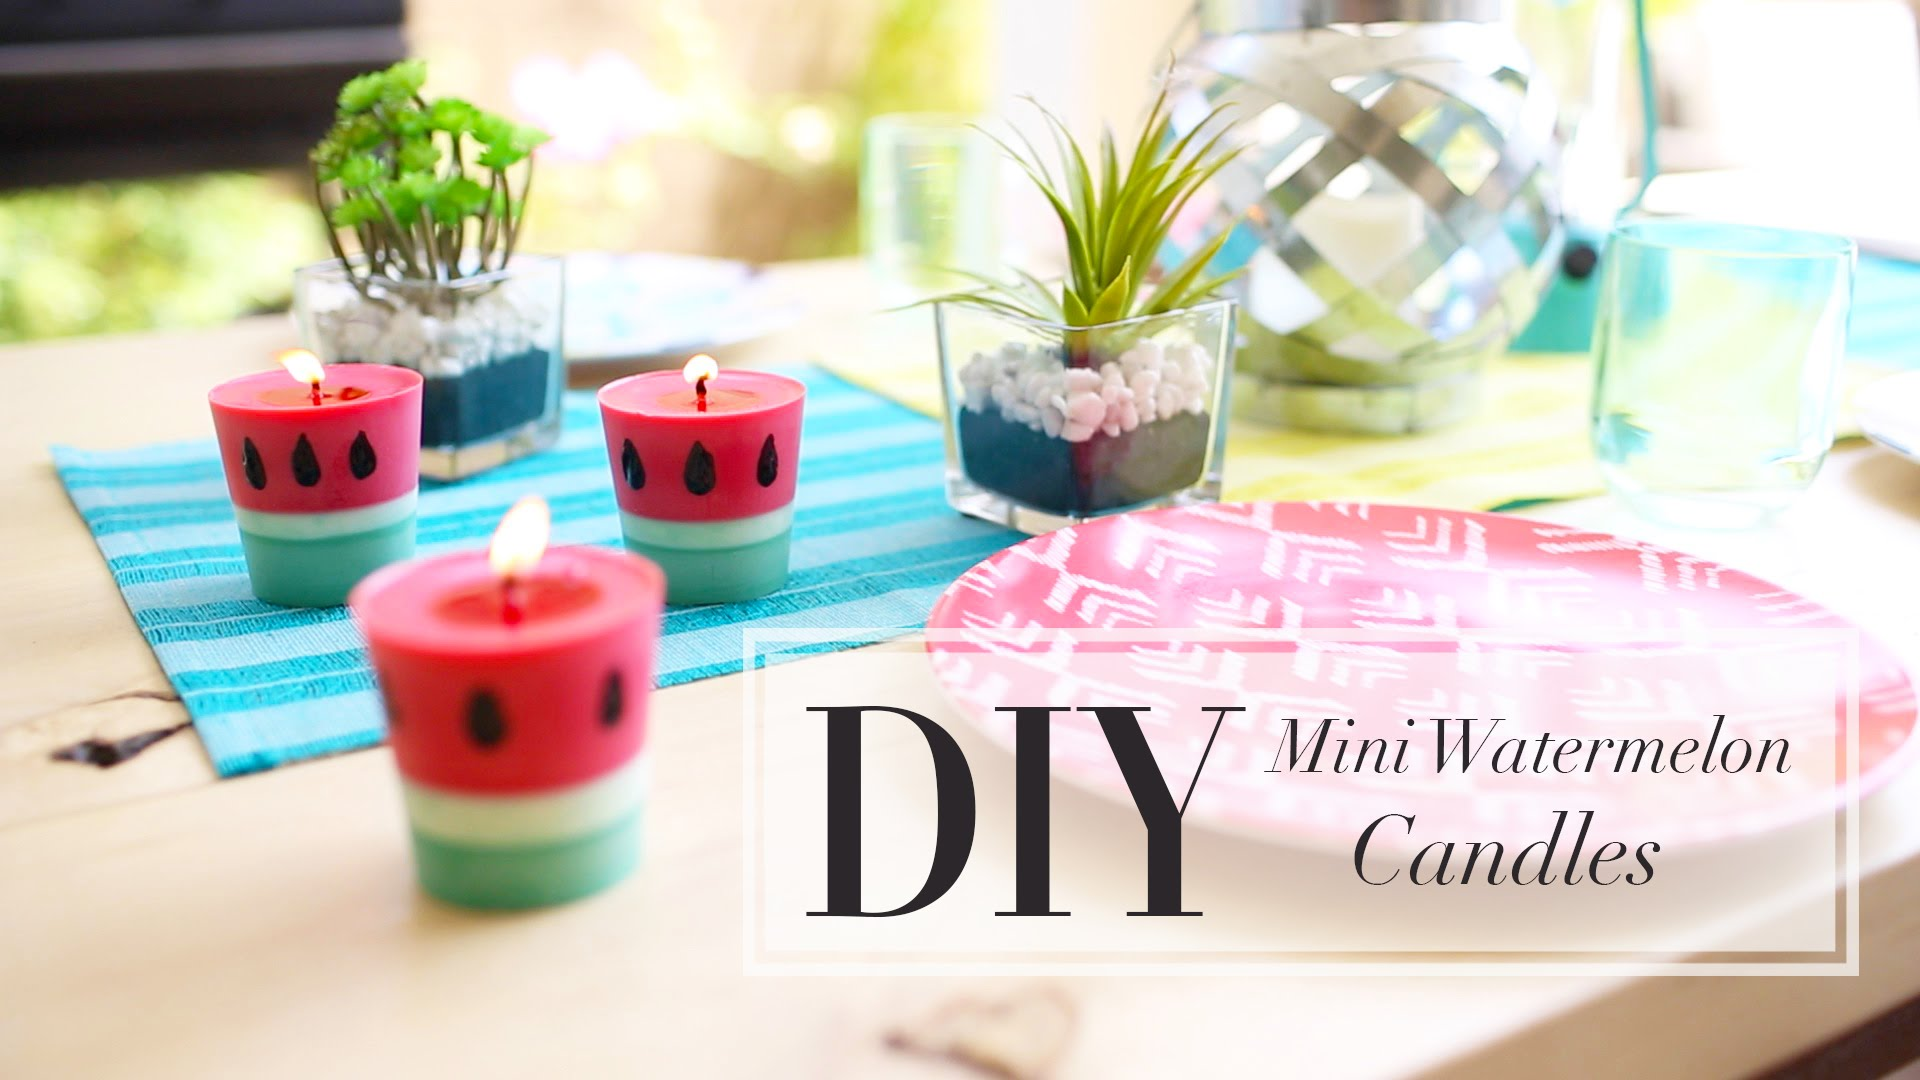 DIY how to Make a Watermelon Candle step by step